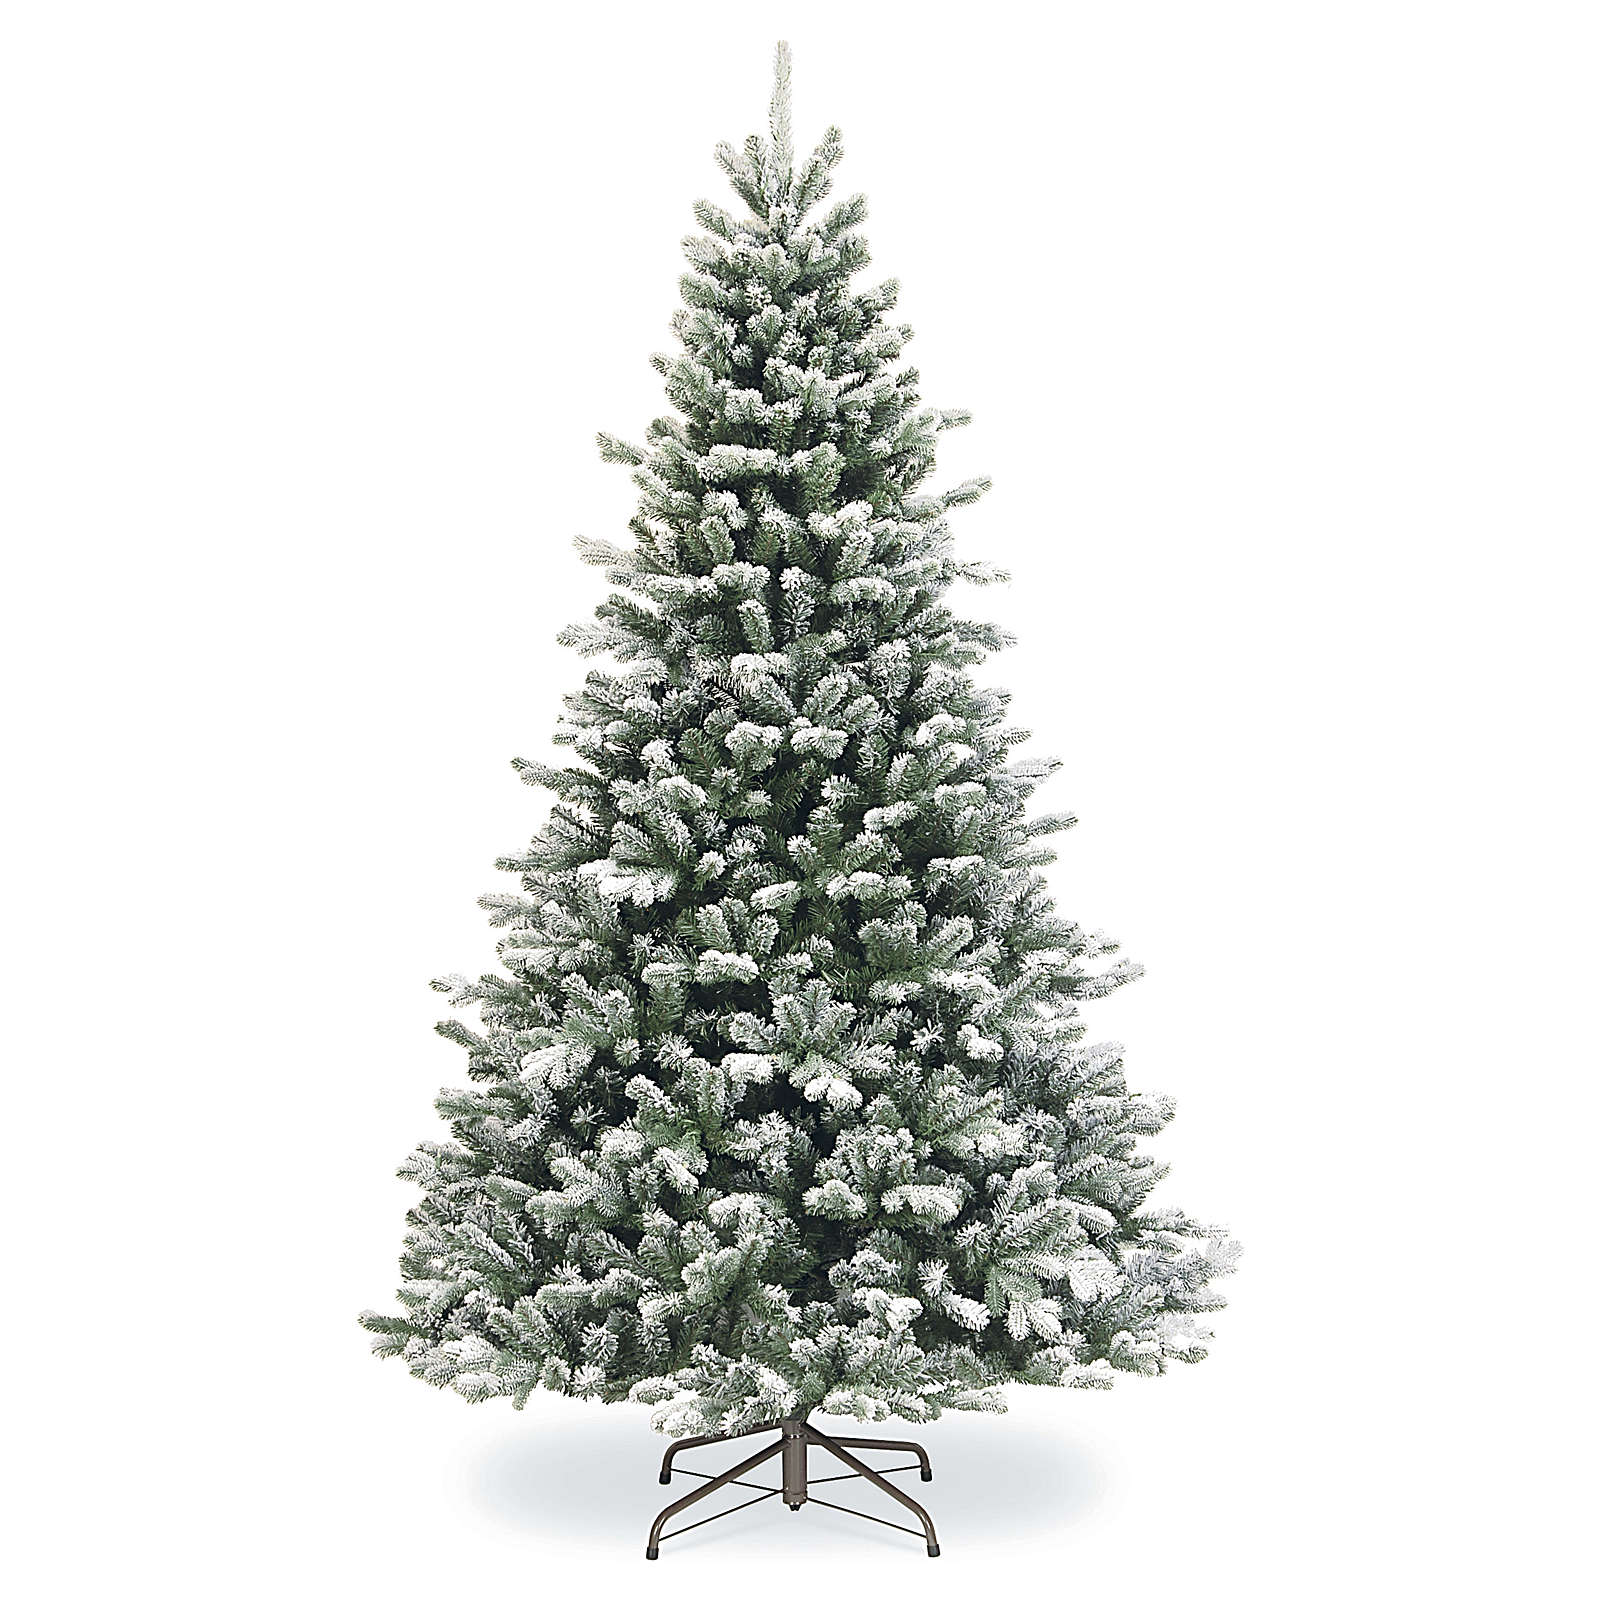 Artificial Christmas tree 180 cm, Sheffield flocked with glitter 3